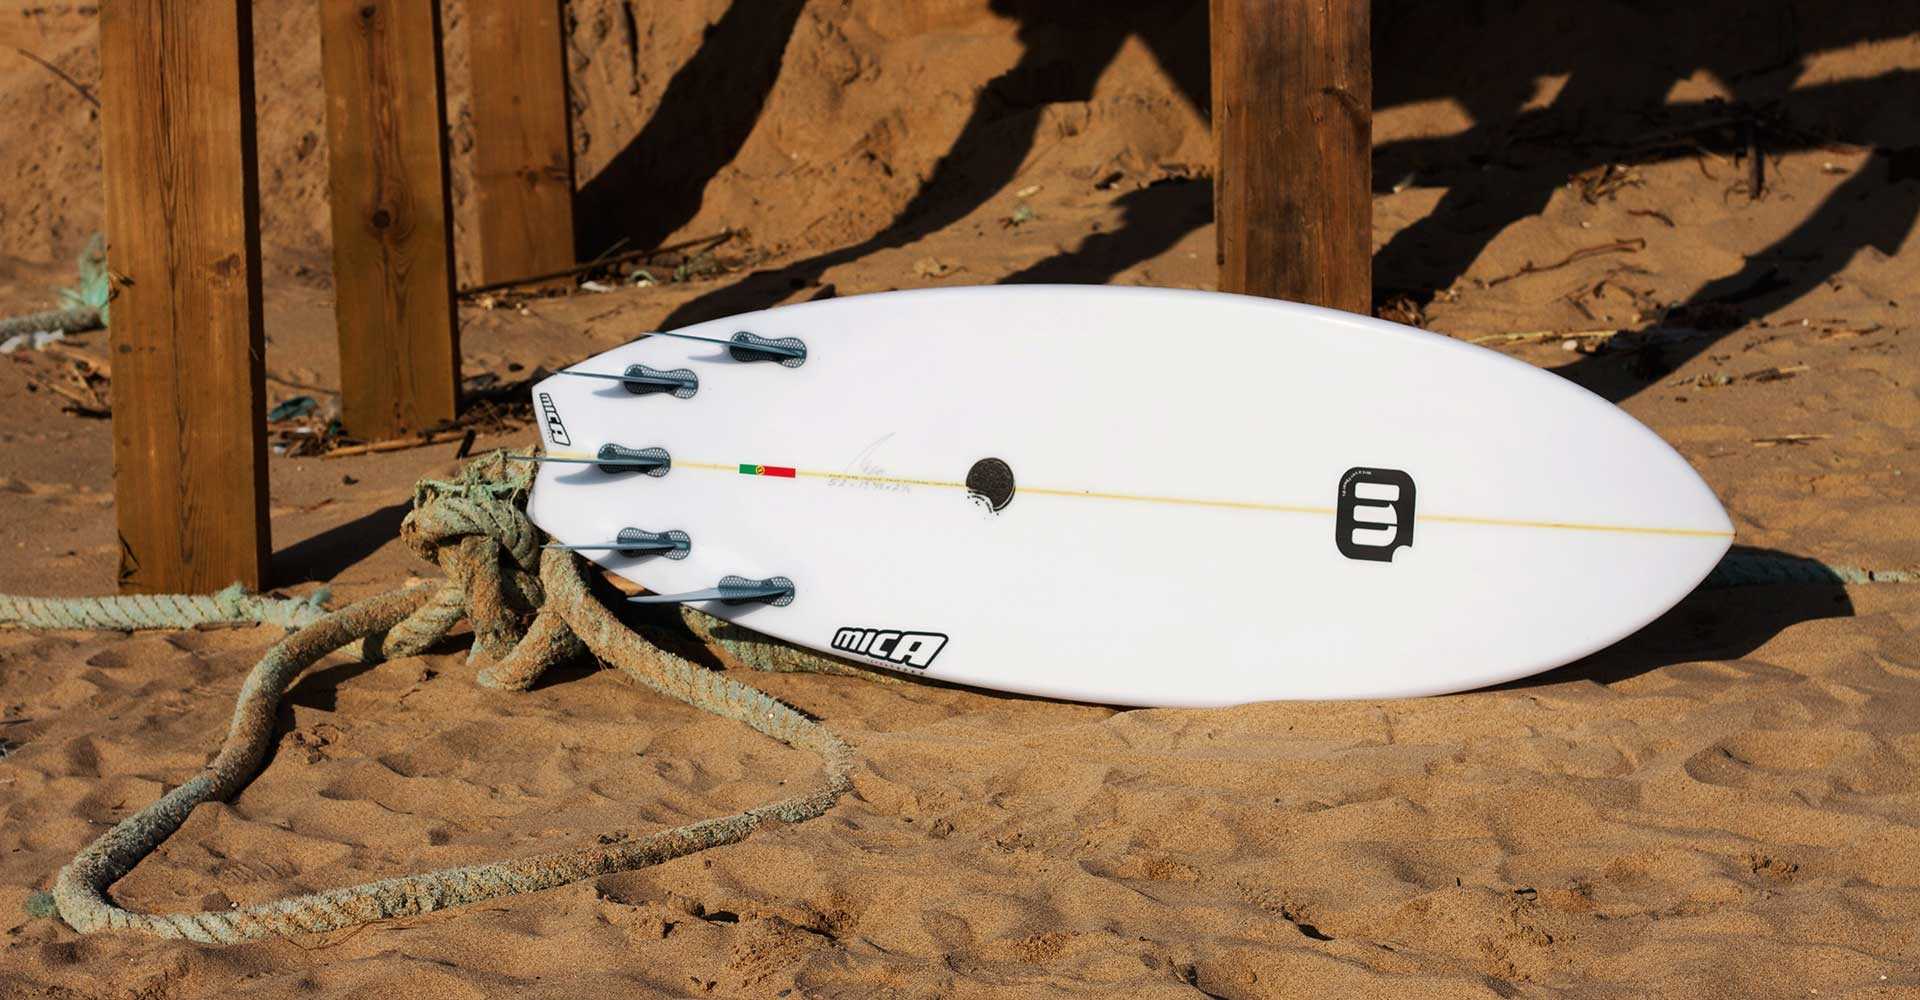 A-cookie-crisp, micasurfboards, surfshop, ericeira, custom-surfboards, 5-fins, fcs II